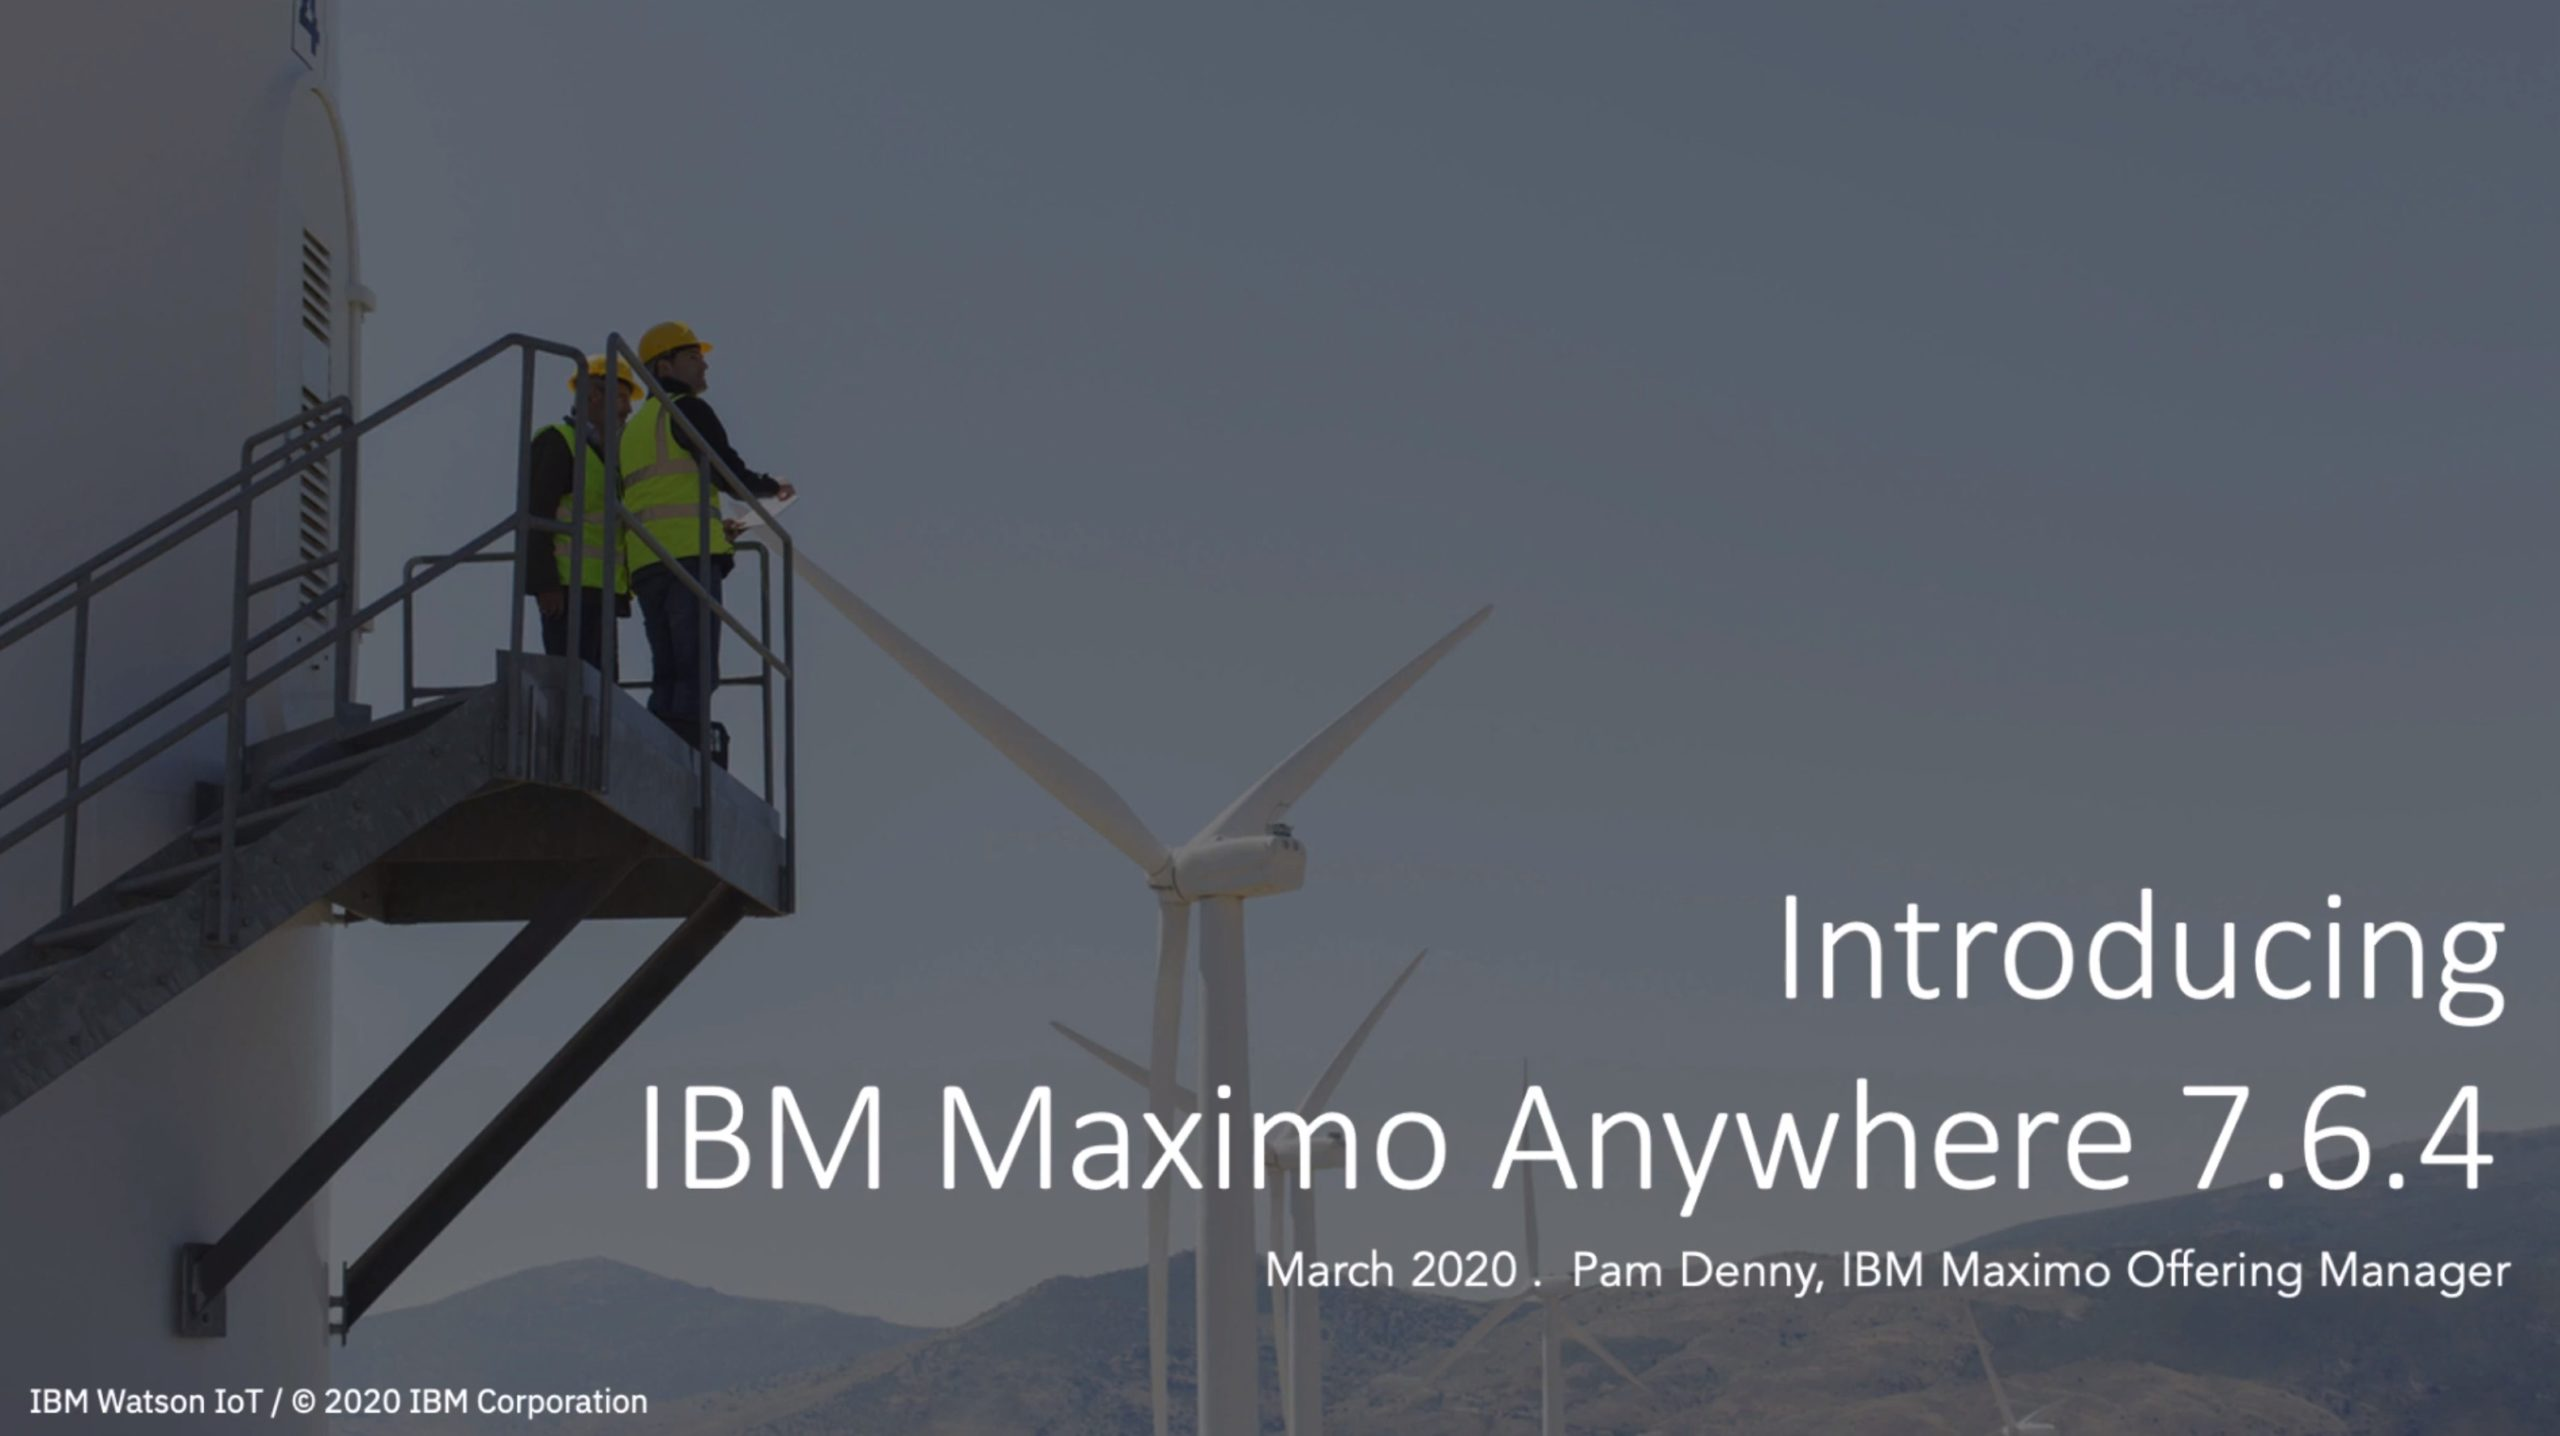 Introducing IBM Maximo Anywhere 7.6.4